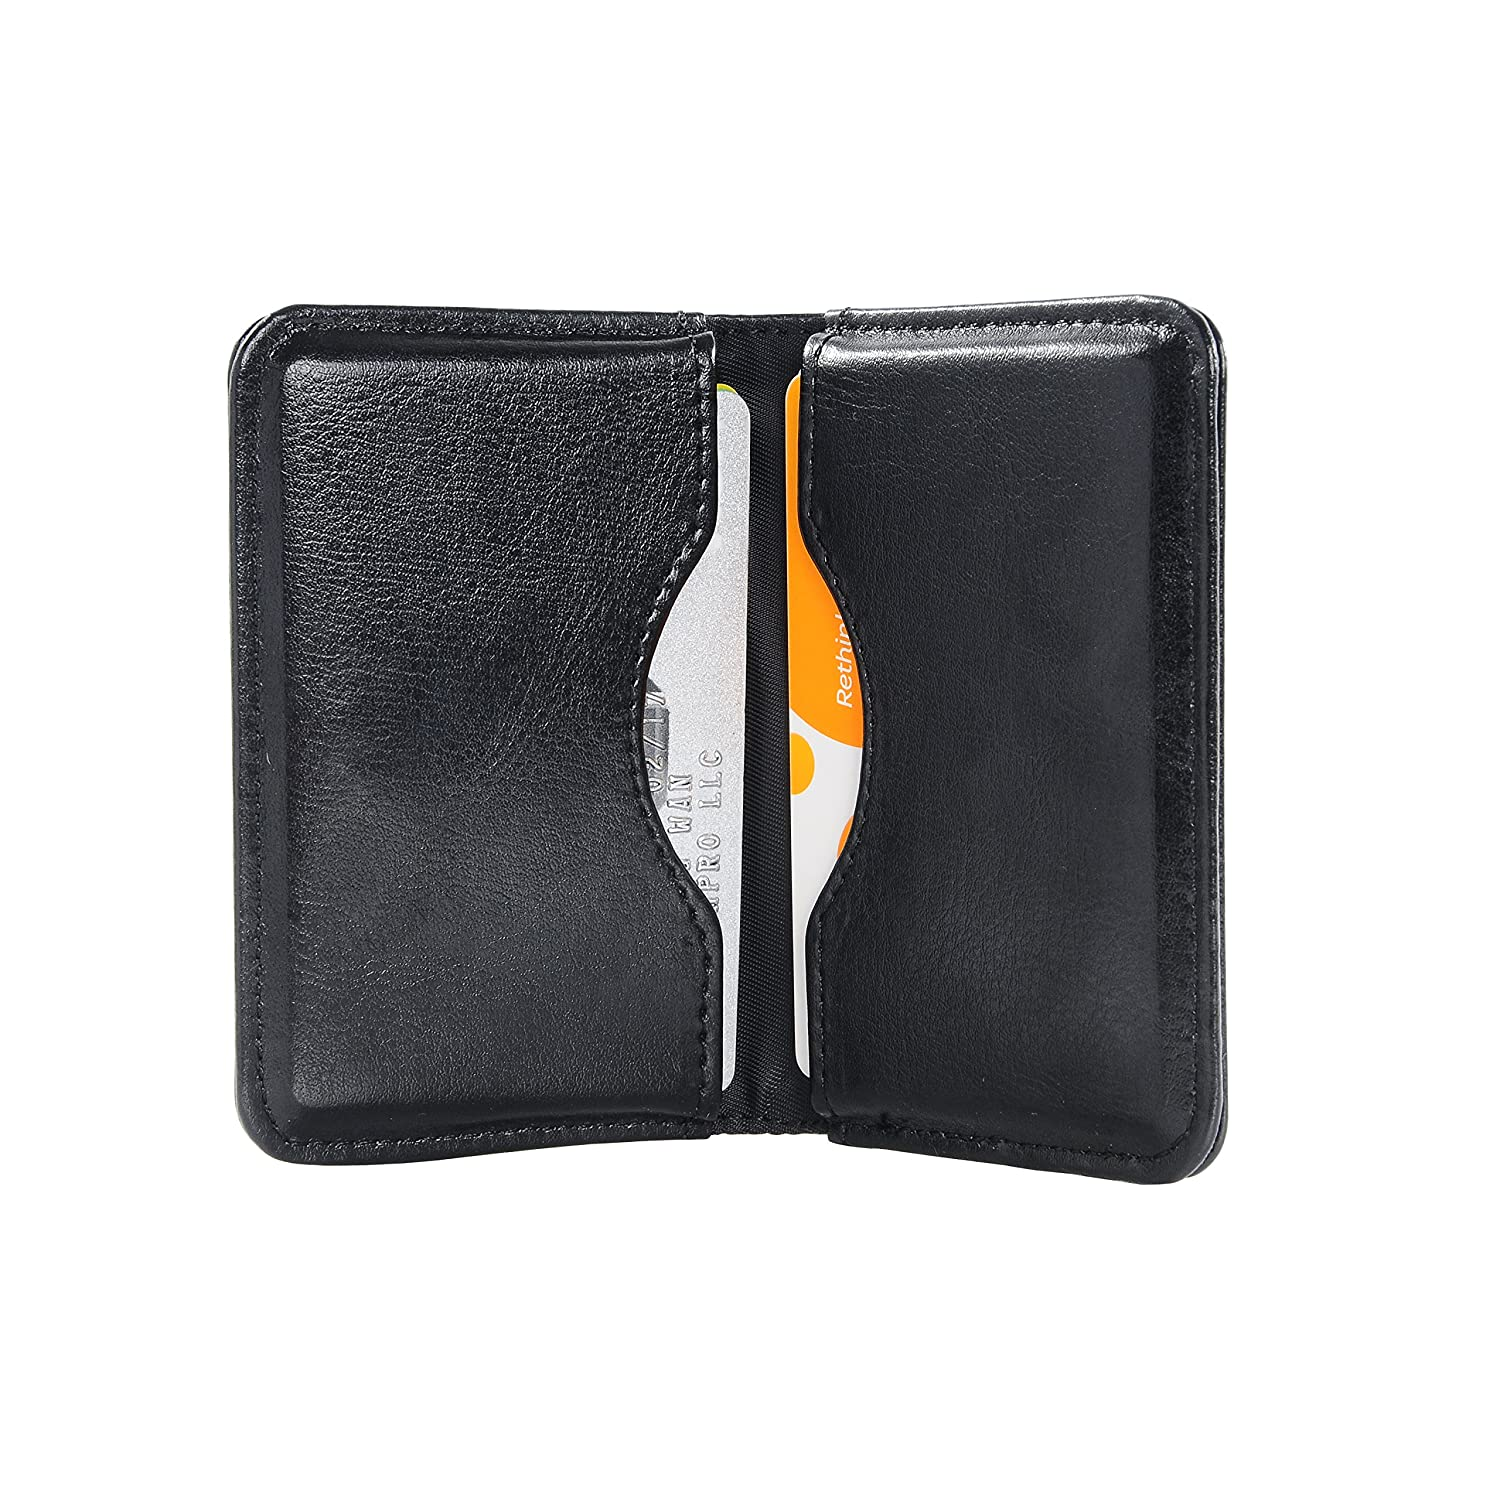 Card Holders & Card Files | Amazon.com | Office & School Supplies ...